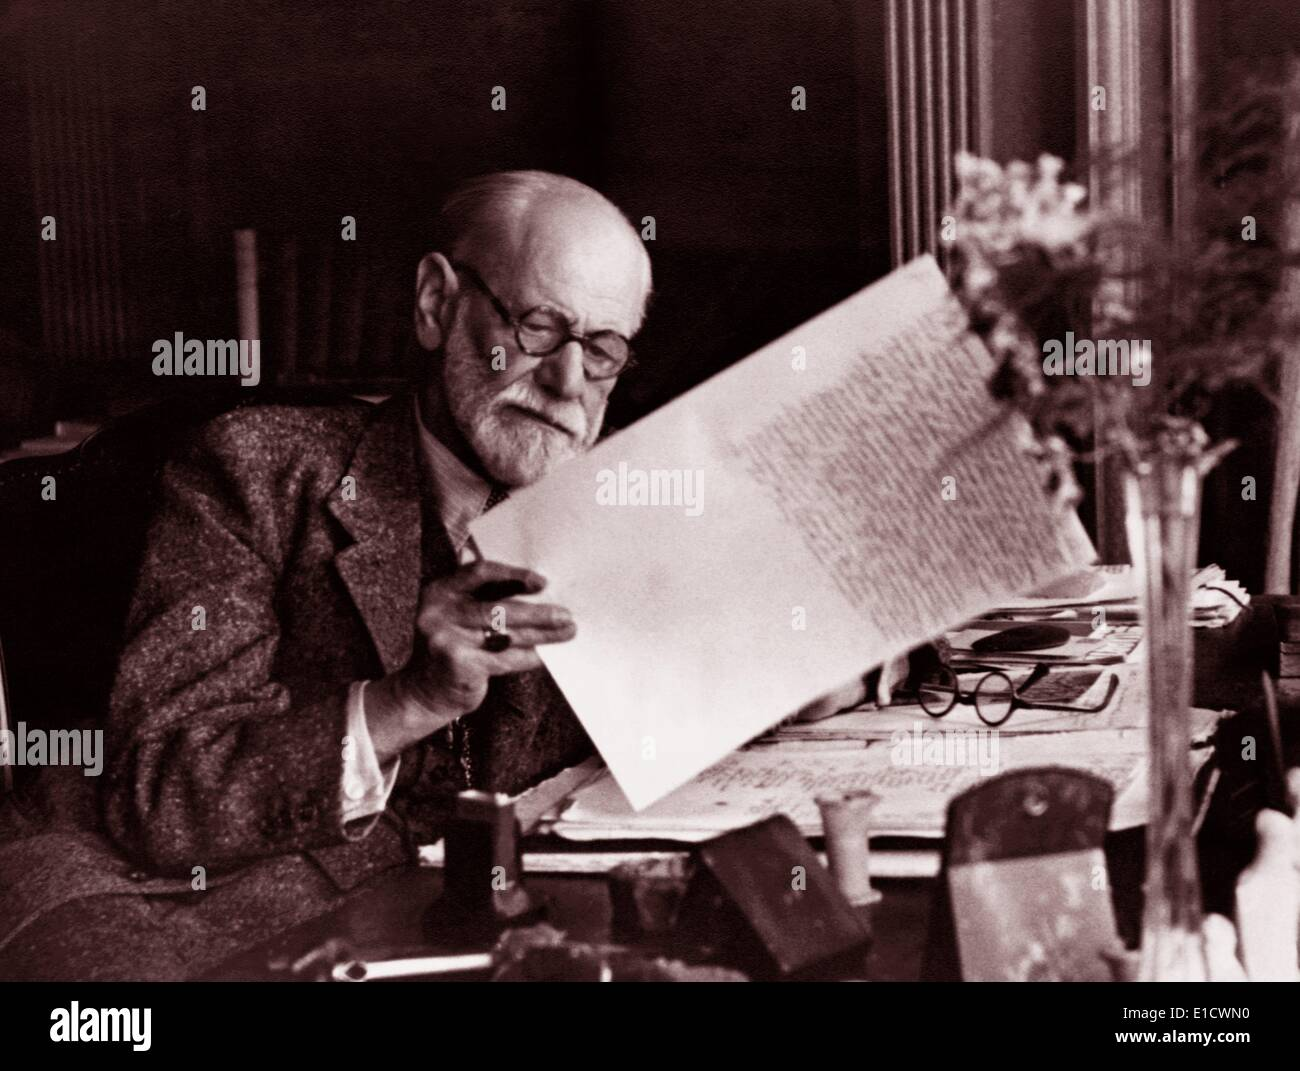 Sigmund Freud (1856-1939). Austrian neurologist, known as the founding father of psychoanalysis - Stock Image